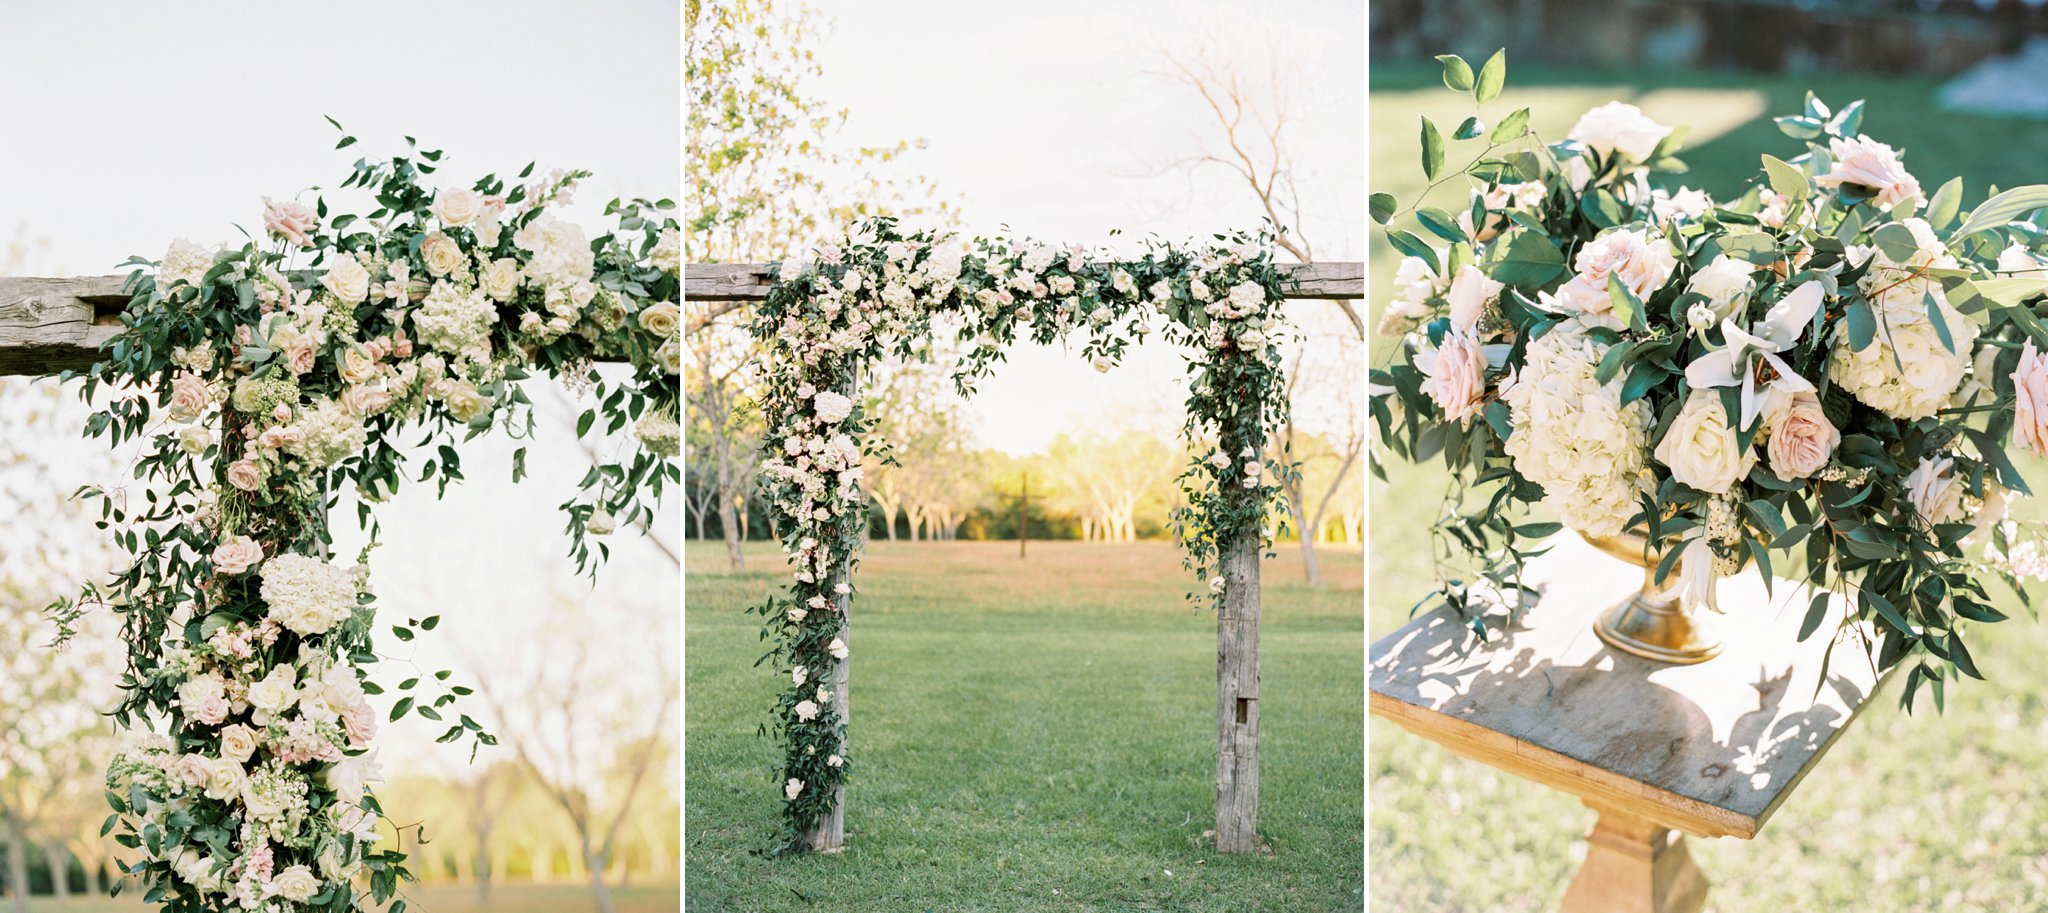 Laura and Connor's outdoor wedding (above) was elegant and classy, you can see more of this beautiful day  here . Florals:  Maxit Flower Design  | Venue: Chandelier Grove